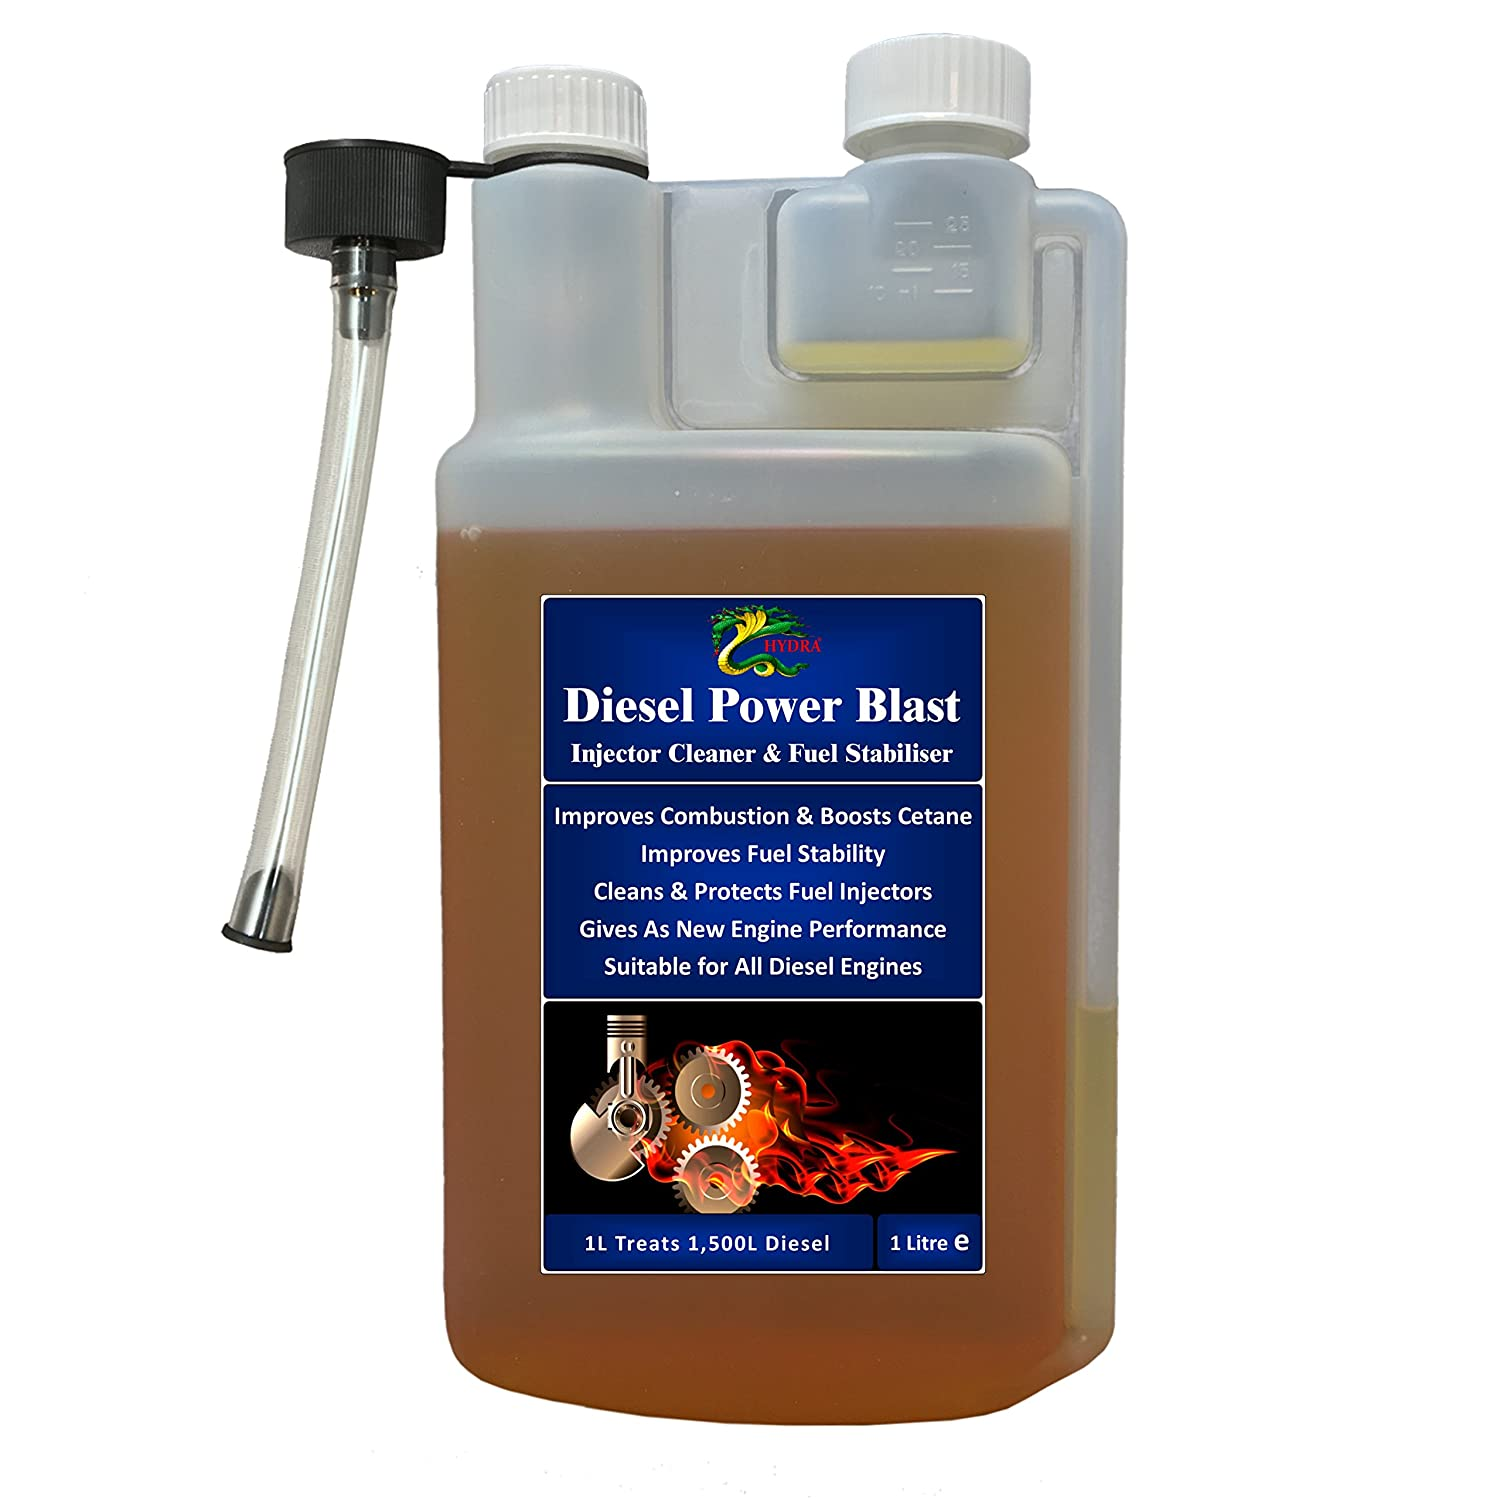 Estabilizador de combustible Diesel Inyector limpiador Treament Hydra Diesel Power Blast 1L Treats hasta 1500 l Hydra International Ltd